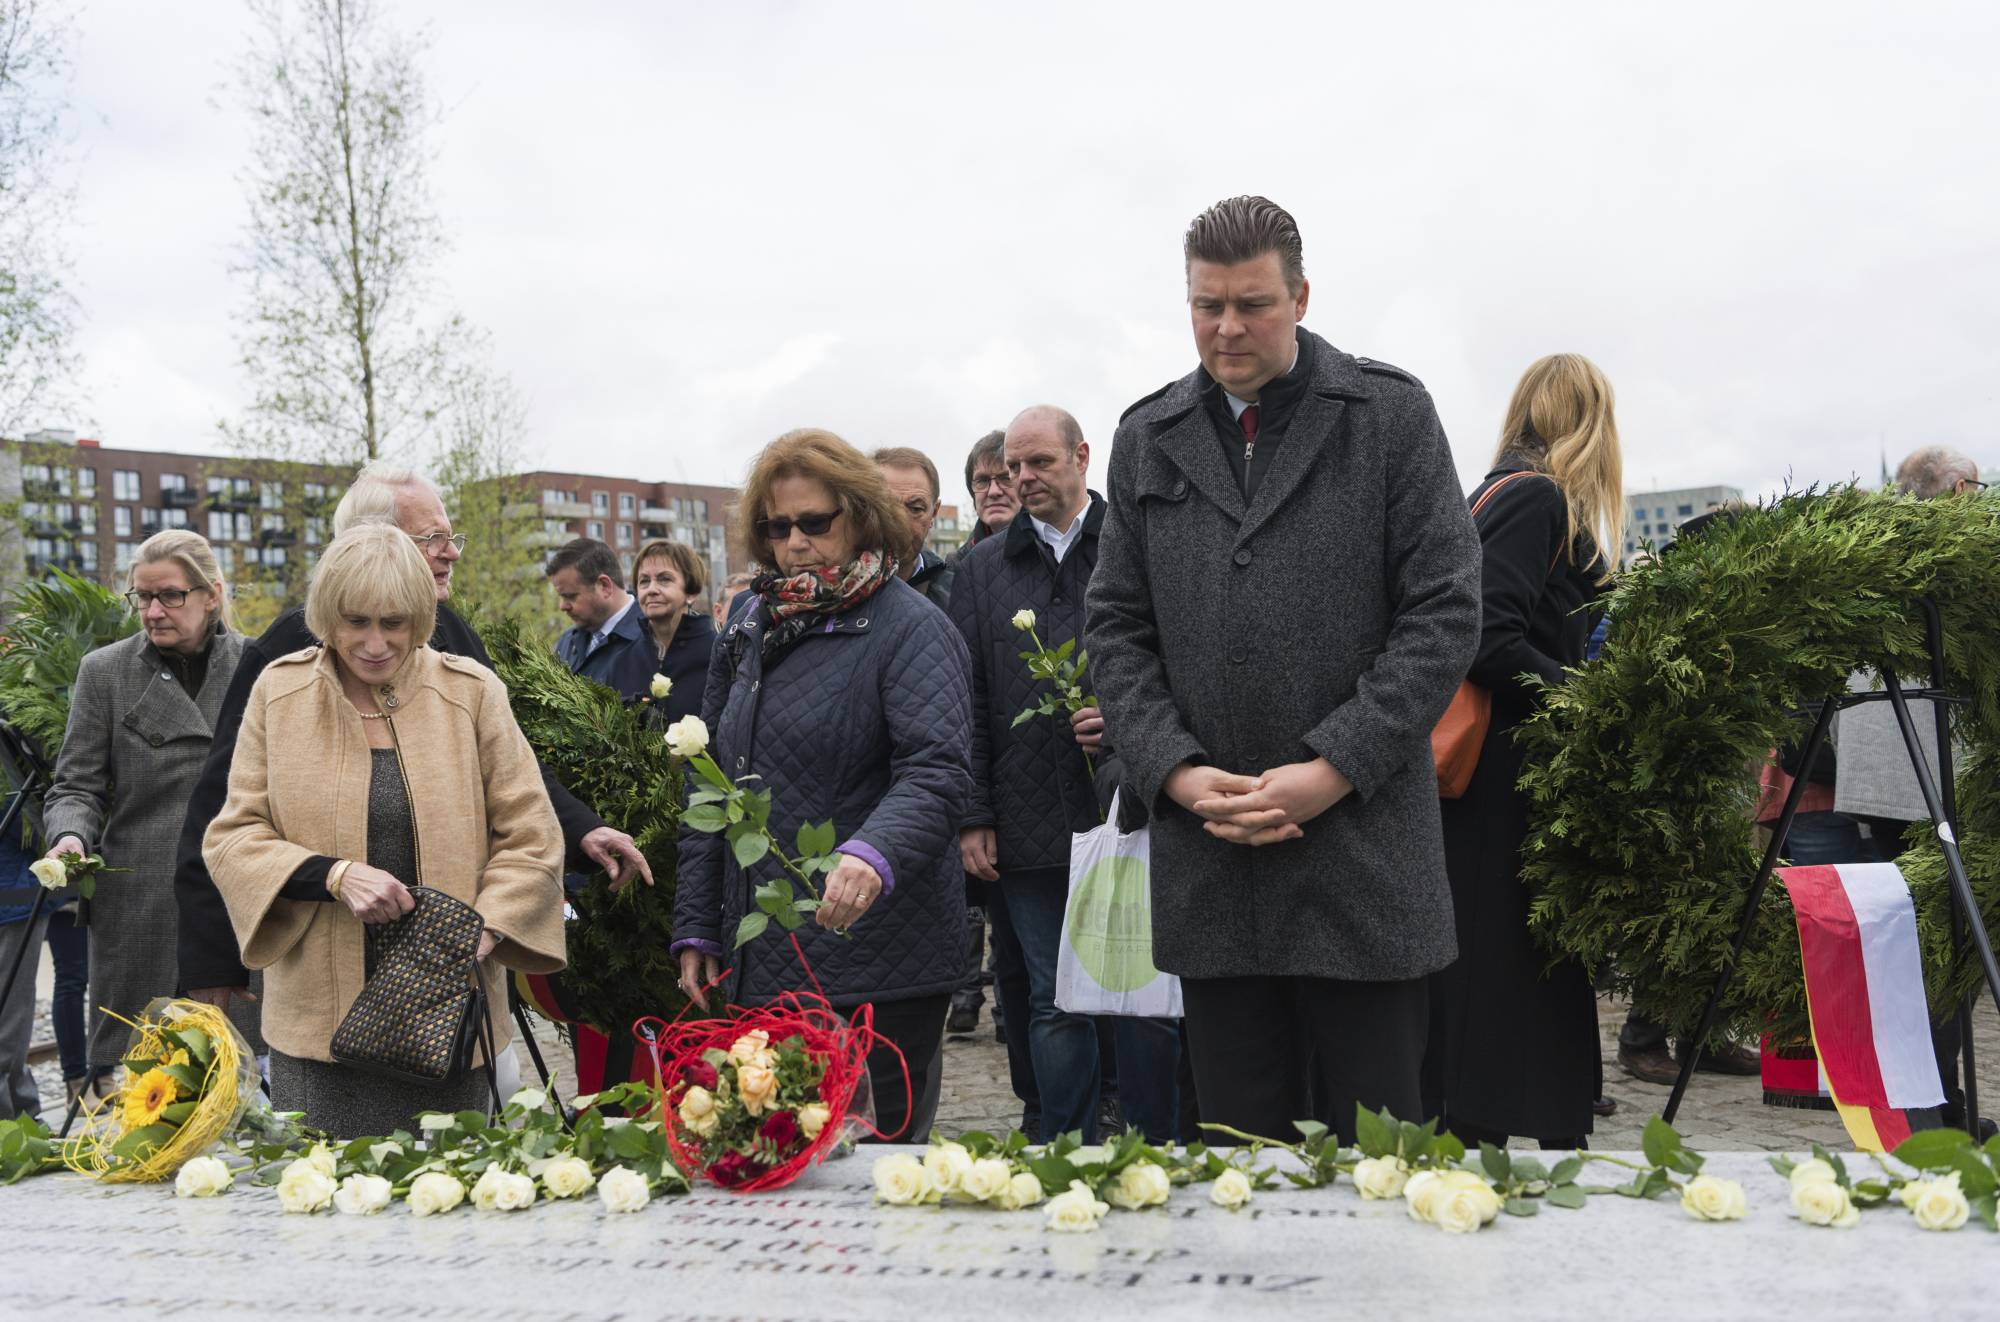 a history of the roma killed in the holocaust Berlin is home to several monuments to germany's dark past on wednesday, chancellor angela merkel helped inaugurate another one, this one dedicated to the sinti and roma murdered by the.